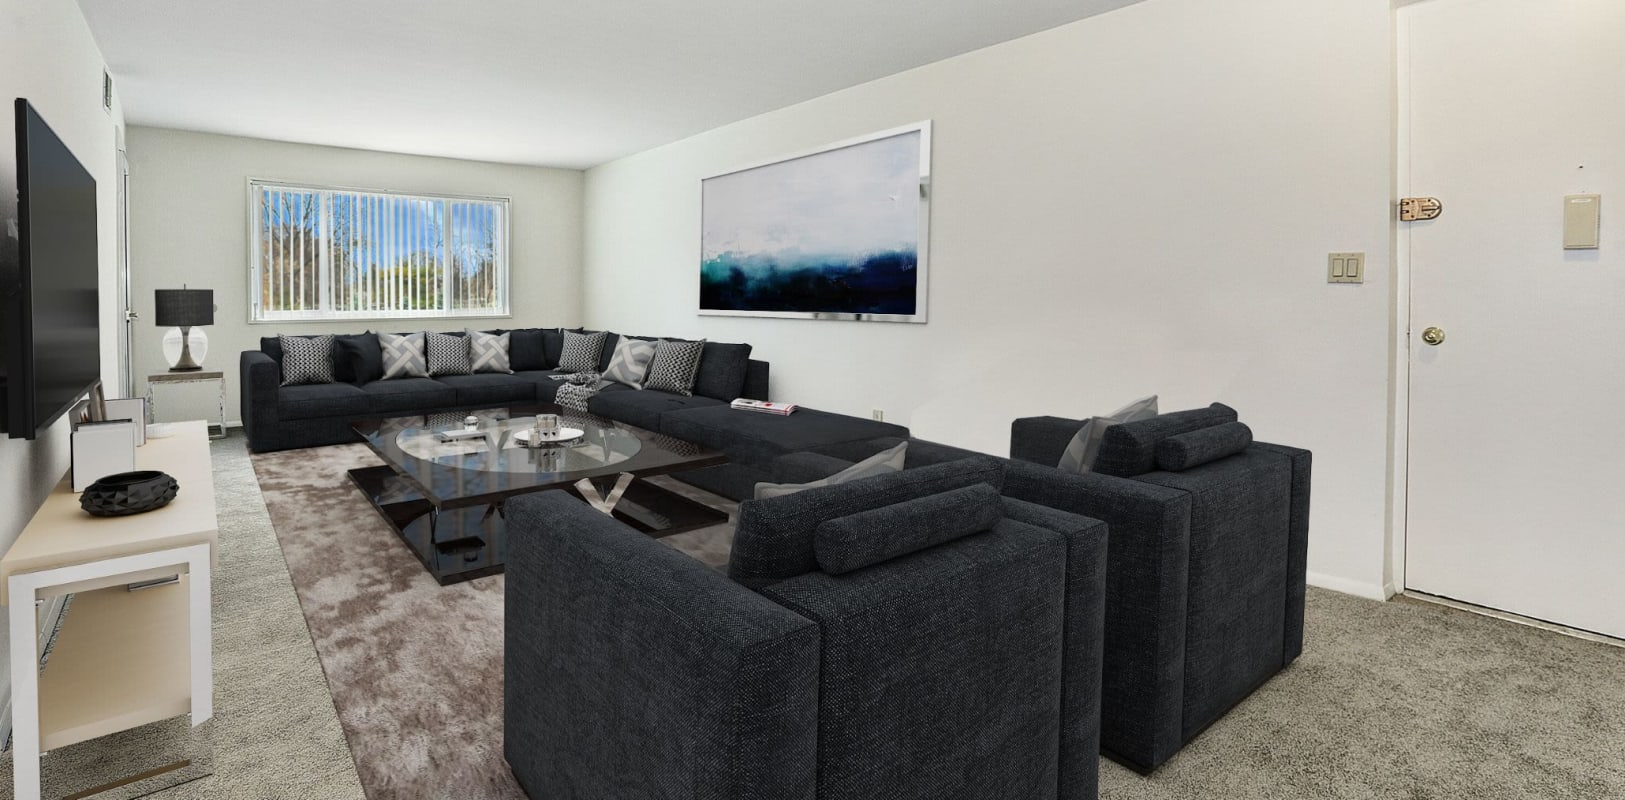 Furnished living room with large tv wall mounted at Penn Crest Apartments in Allentown, Pennsylvania